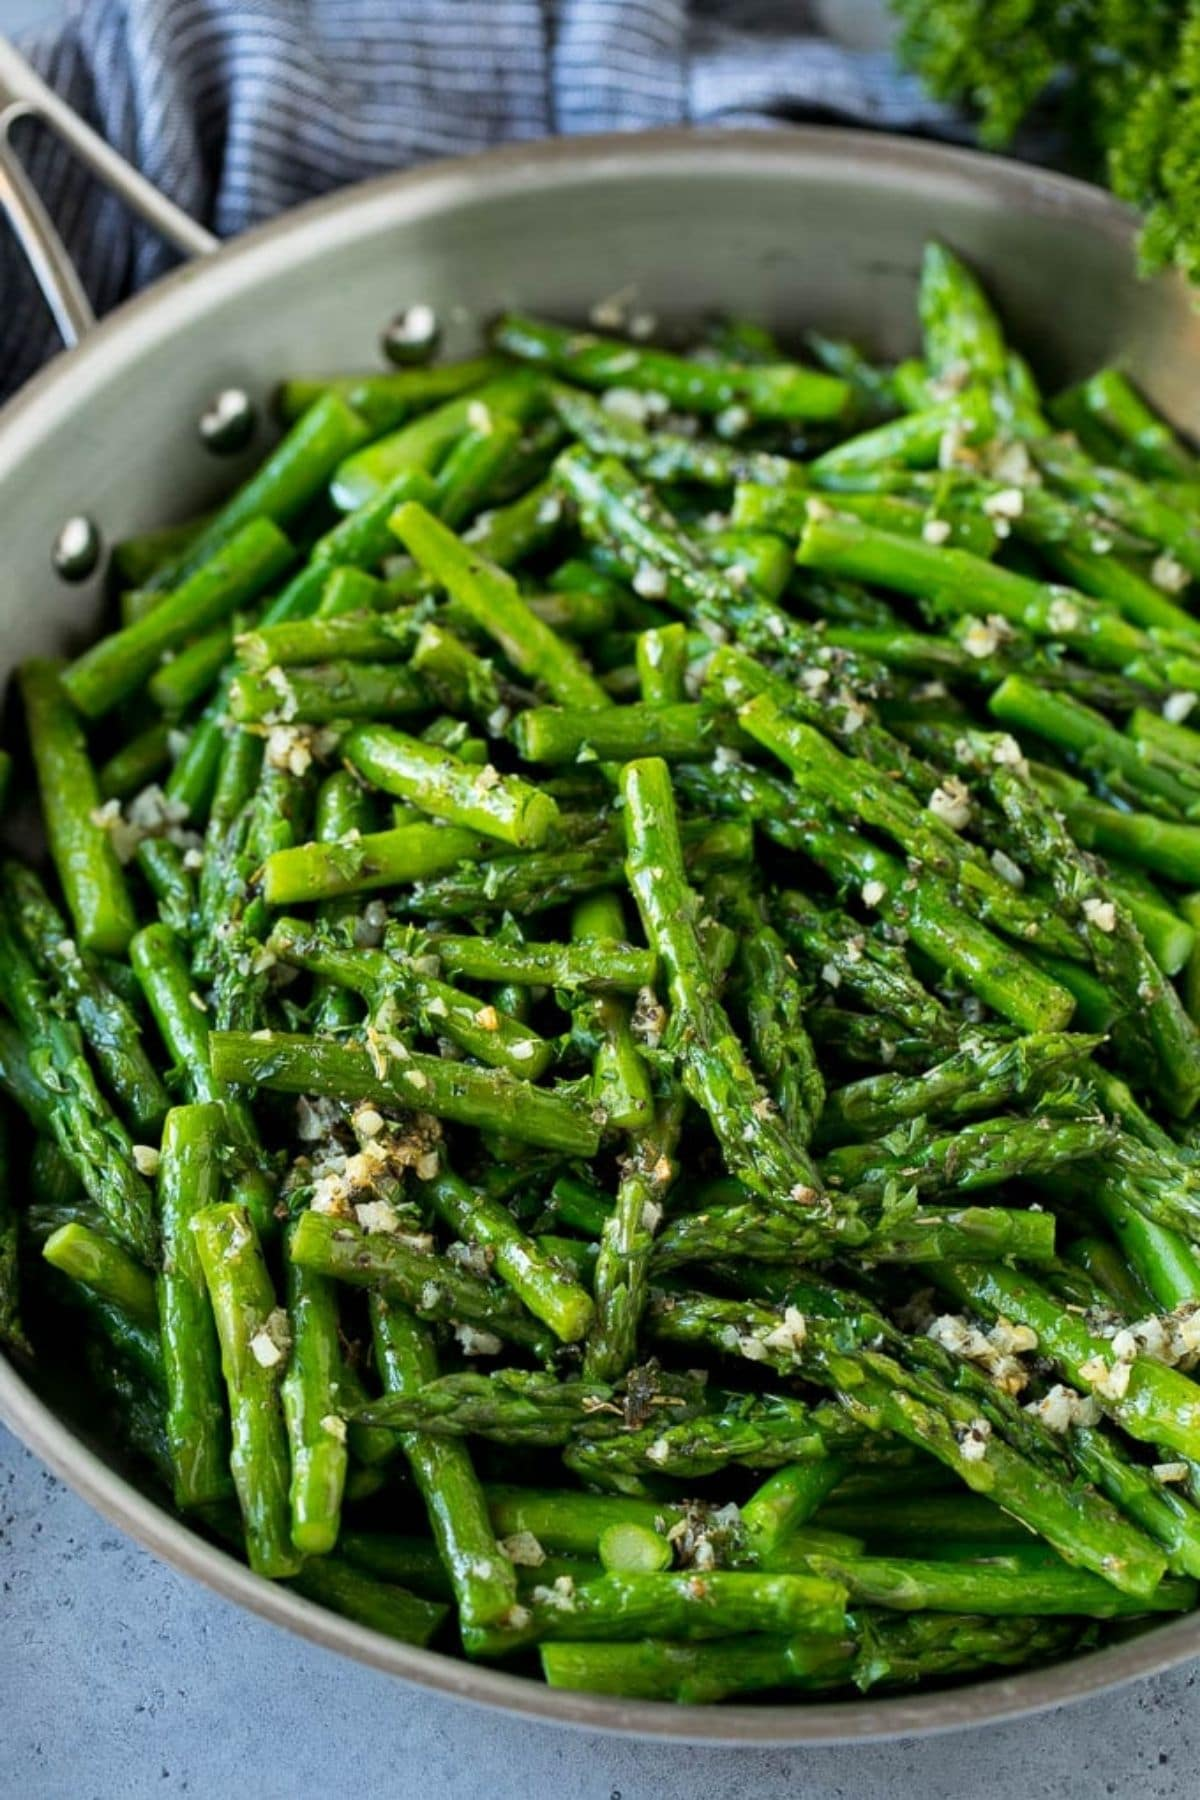 Bright green asparagus heads in skillet